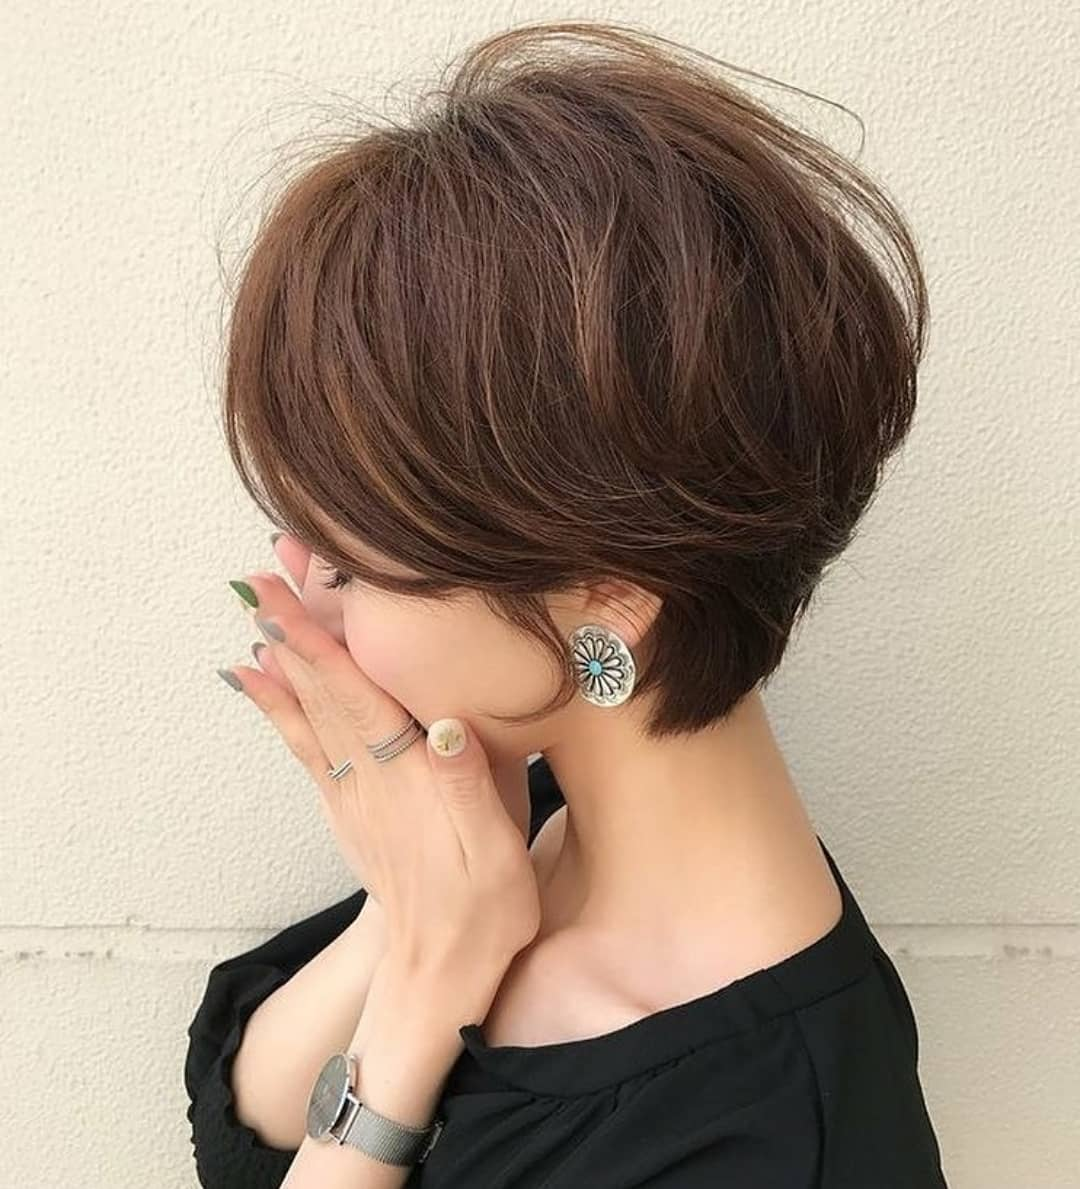 Cute Short Hairstyles and Haircuts for Young Girl